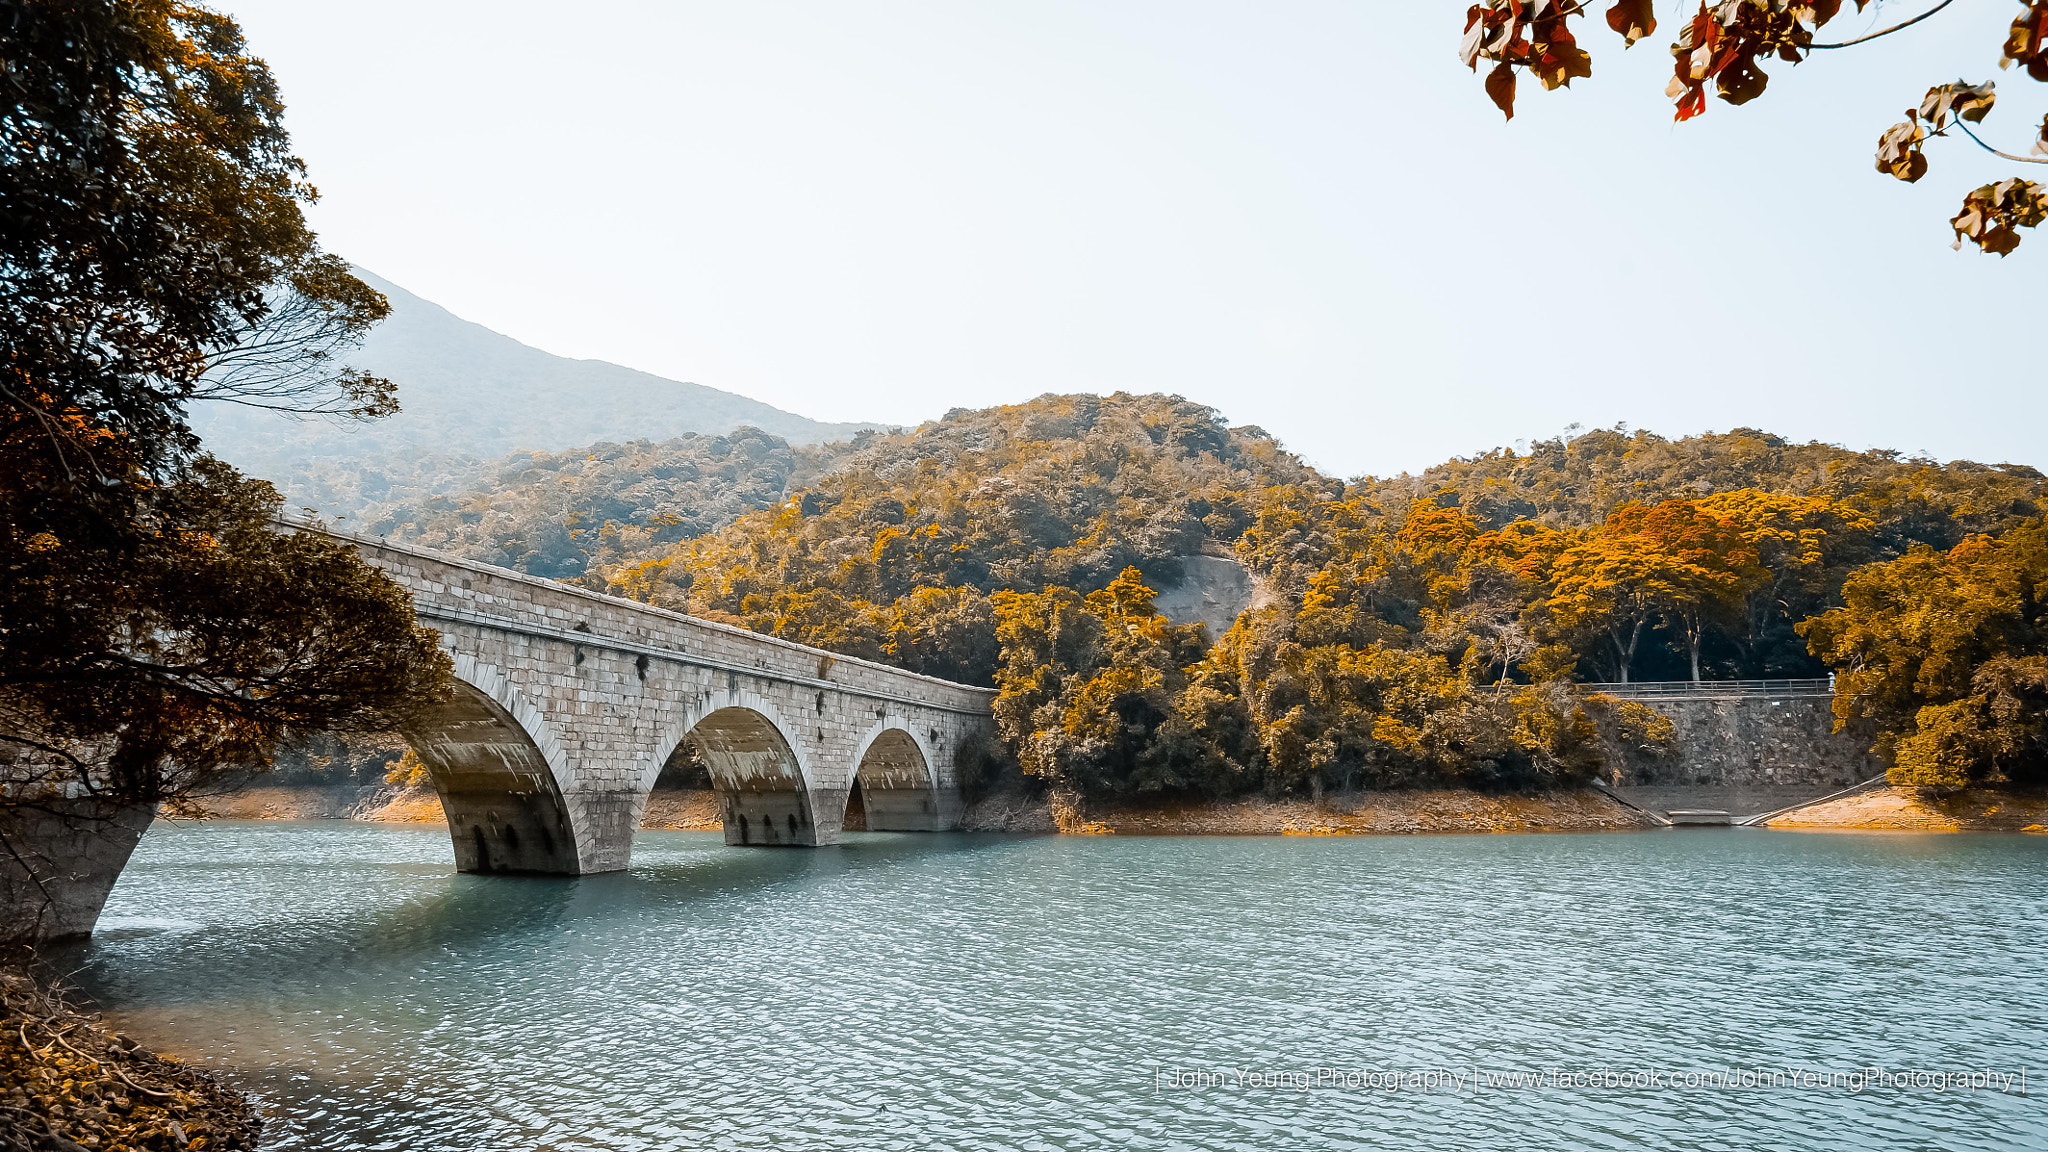 Photograph Tai Tam Bridge, Hong Kong by John Yeung on 500px